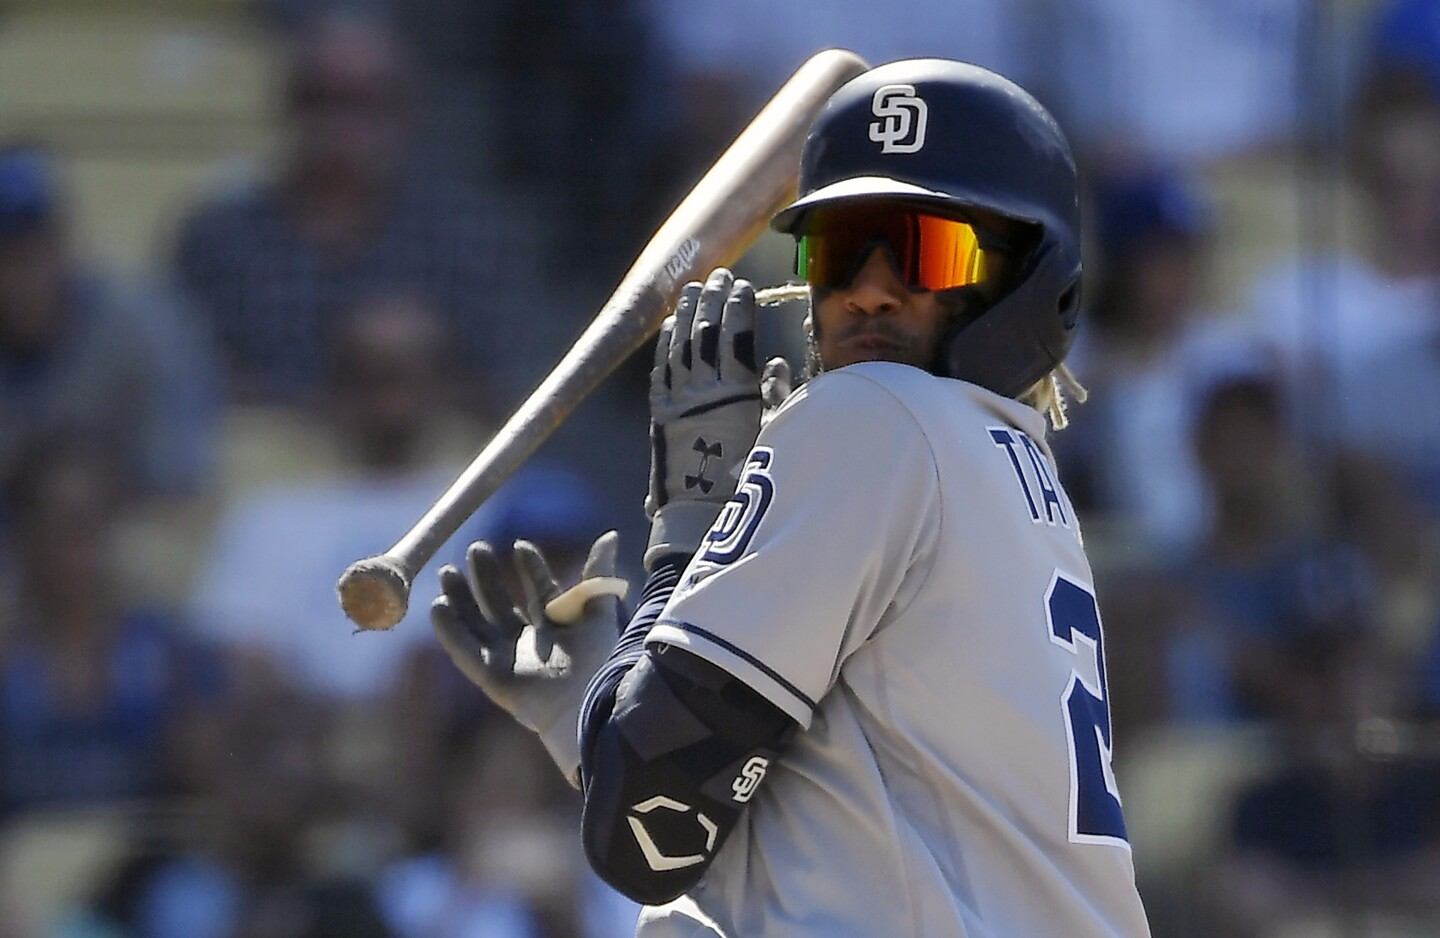 San Diego Padres' Fernando Tatis Jr. avoids a close pitch during the seventh inning of a baseball game against the Los Angeles Dodgers, Sunday, Aug. 4, 2019, in Los Angeles. (AP Photo/Mark J. Terrill)